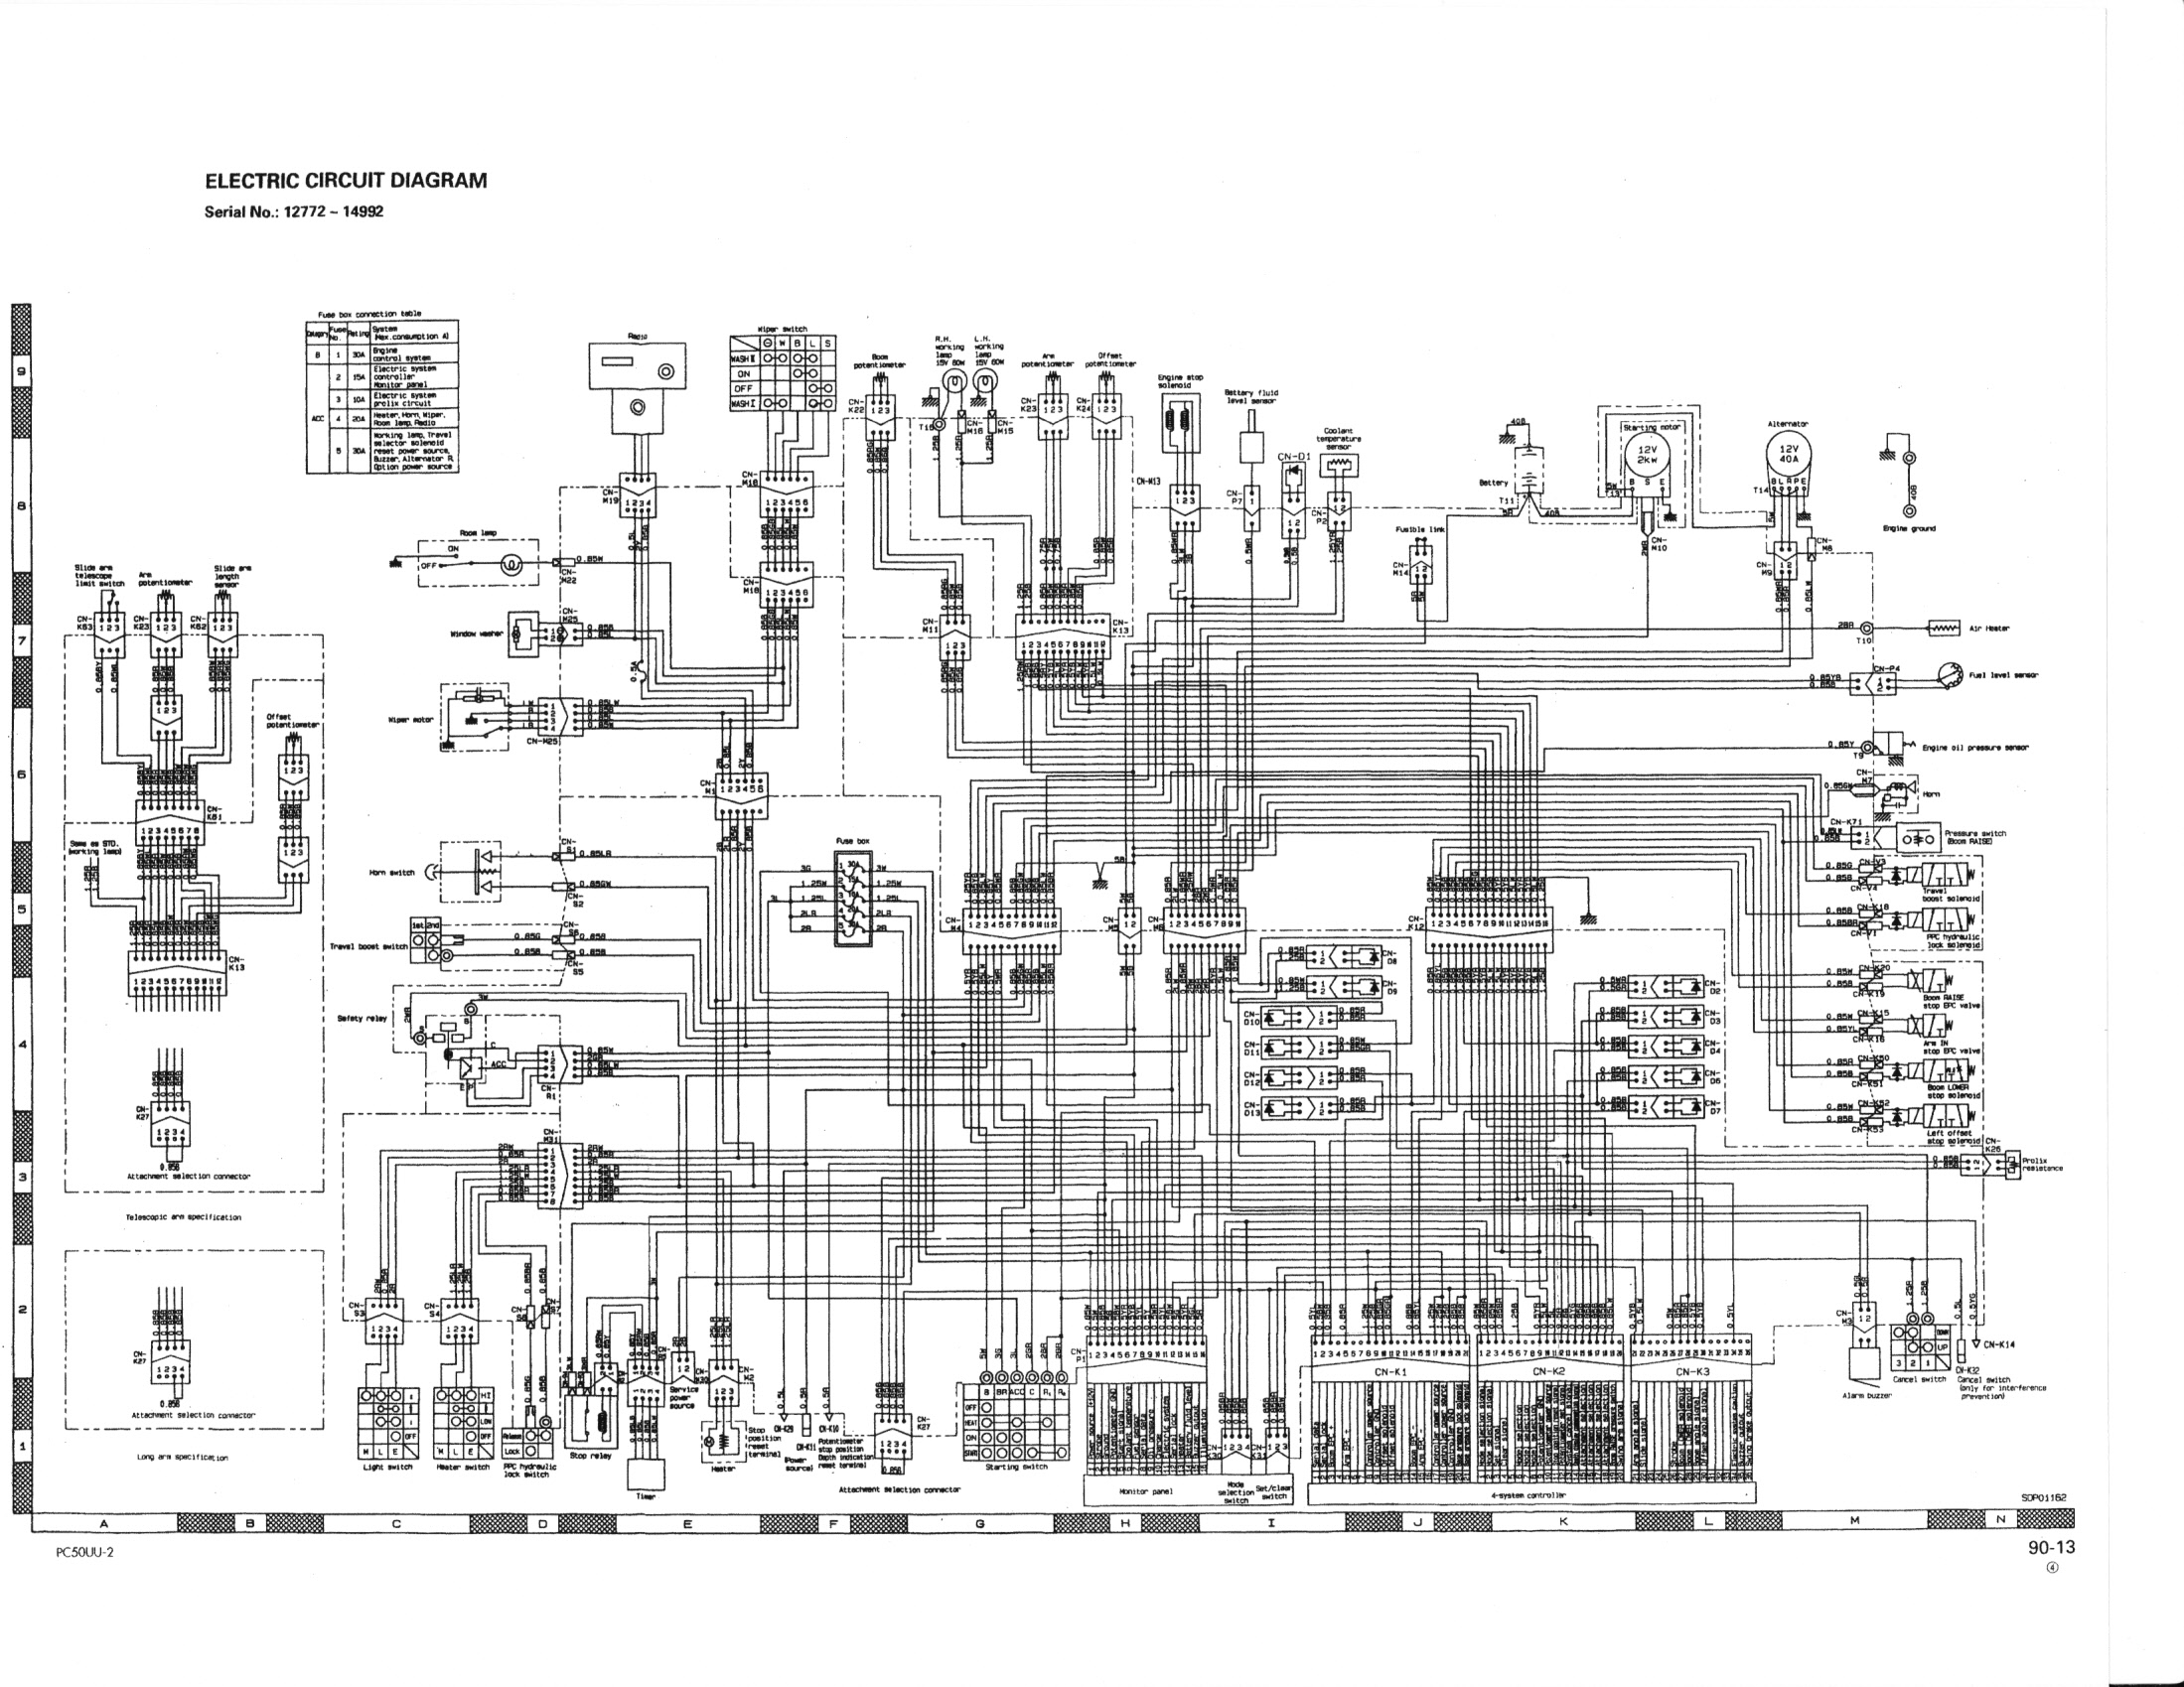 Wiring Diagram For Cab In Ford New Holland